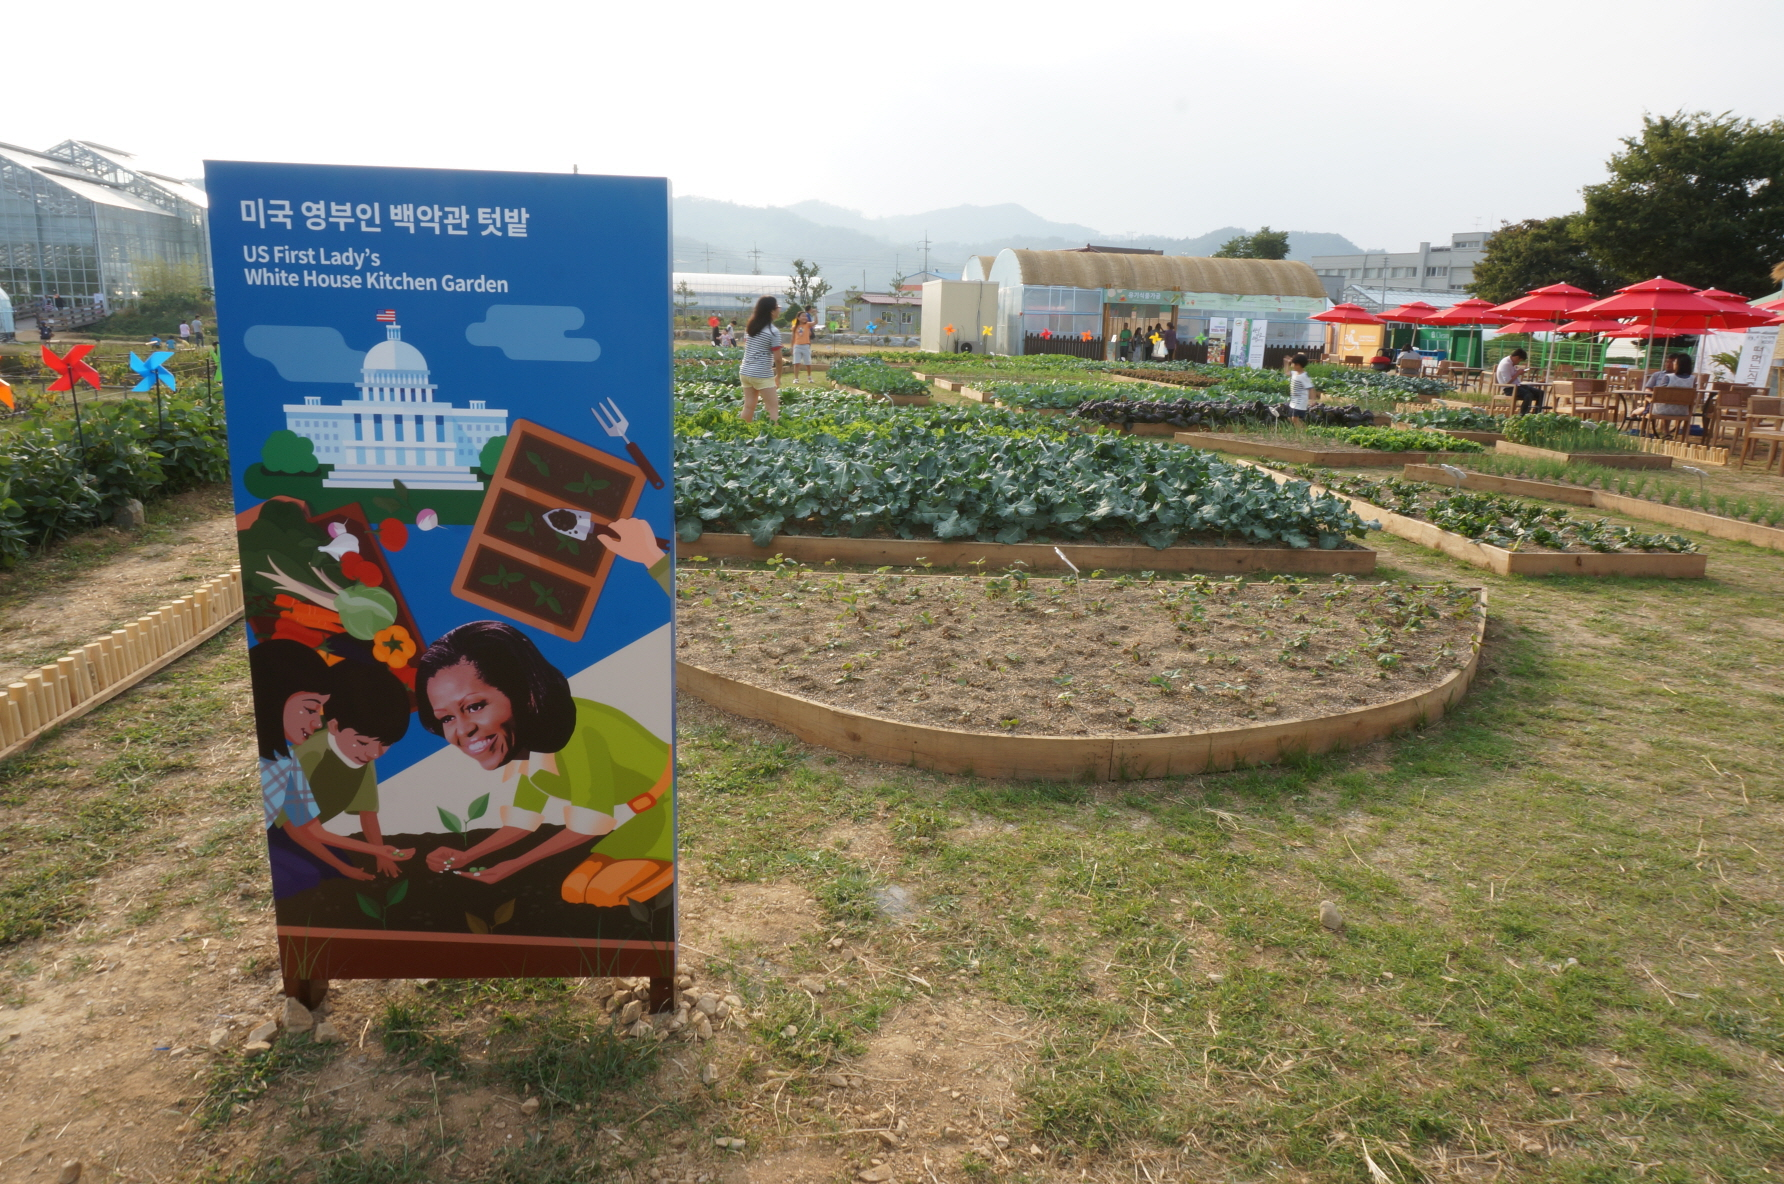 The 'US First Lady's White House Kitchen Garden' exhibited at the Goesan International Organic Expo was the perfect example of beauty in simplicity. (Image : Goesan International Organic Expo Homepage)